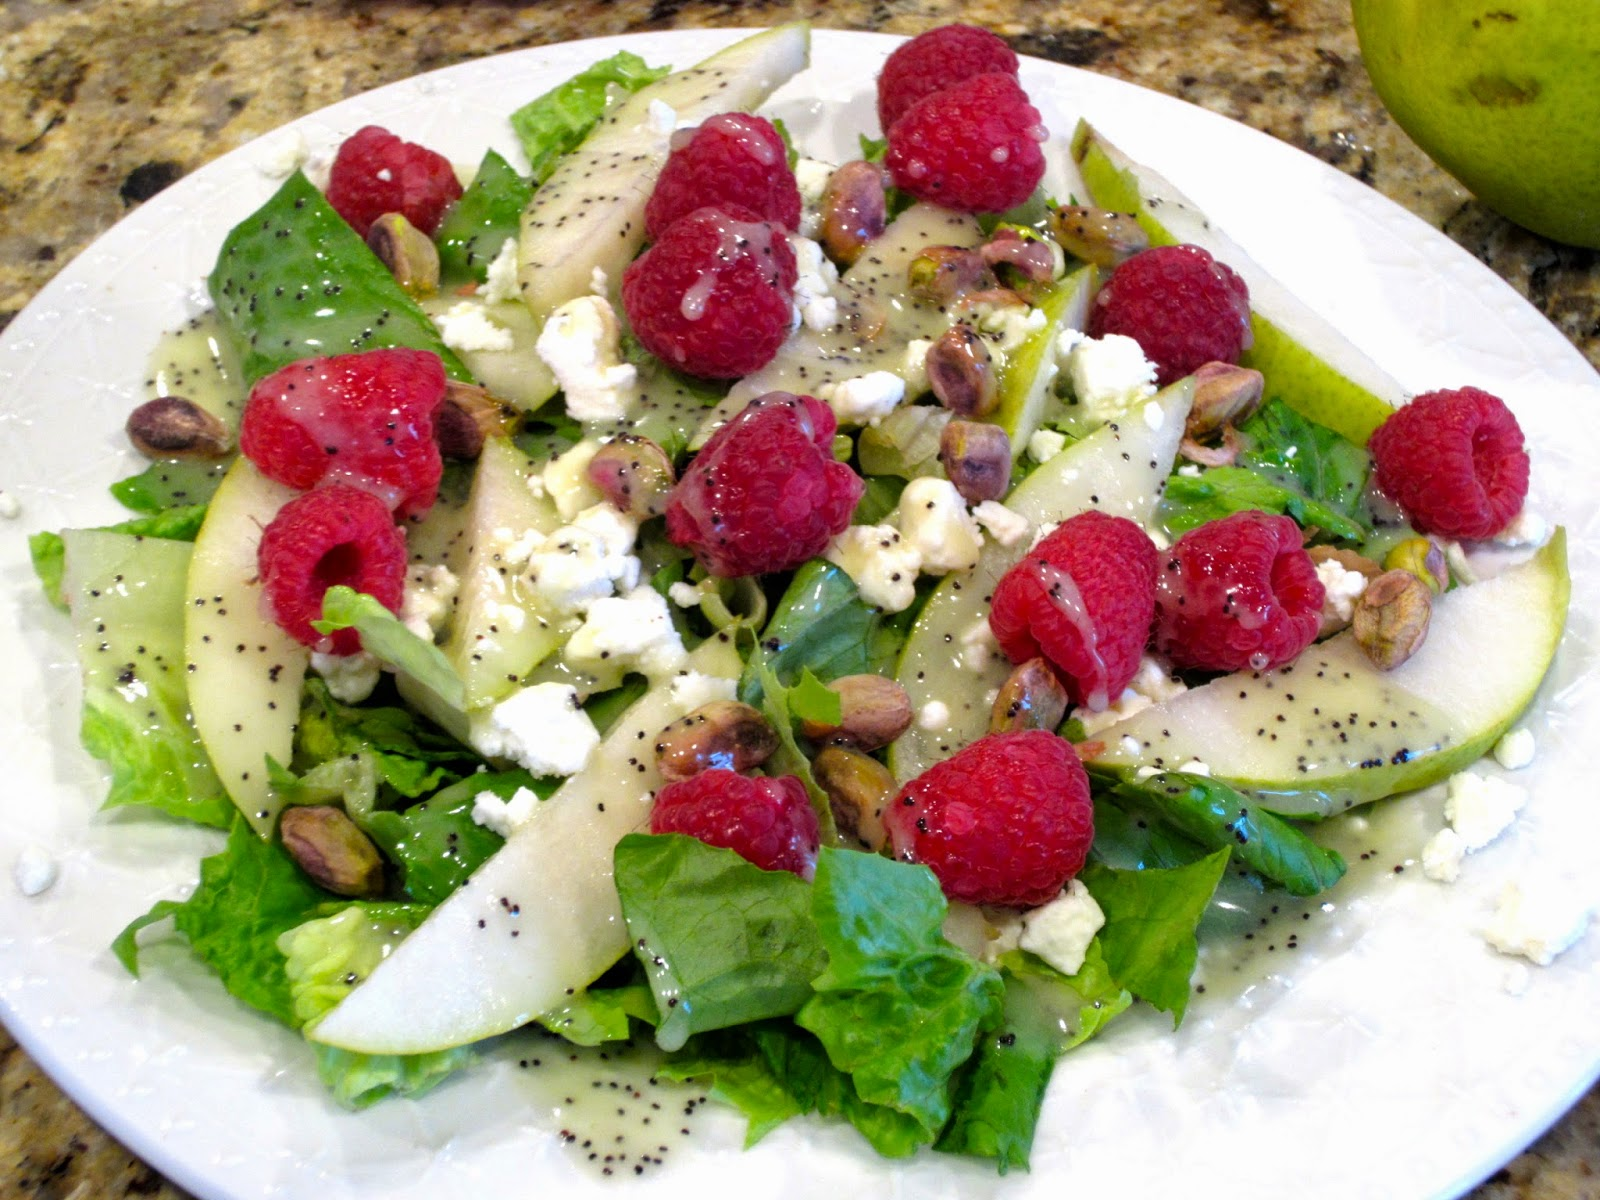 Pear and Raspberry Salad